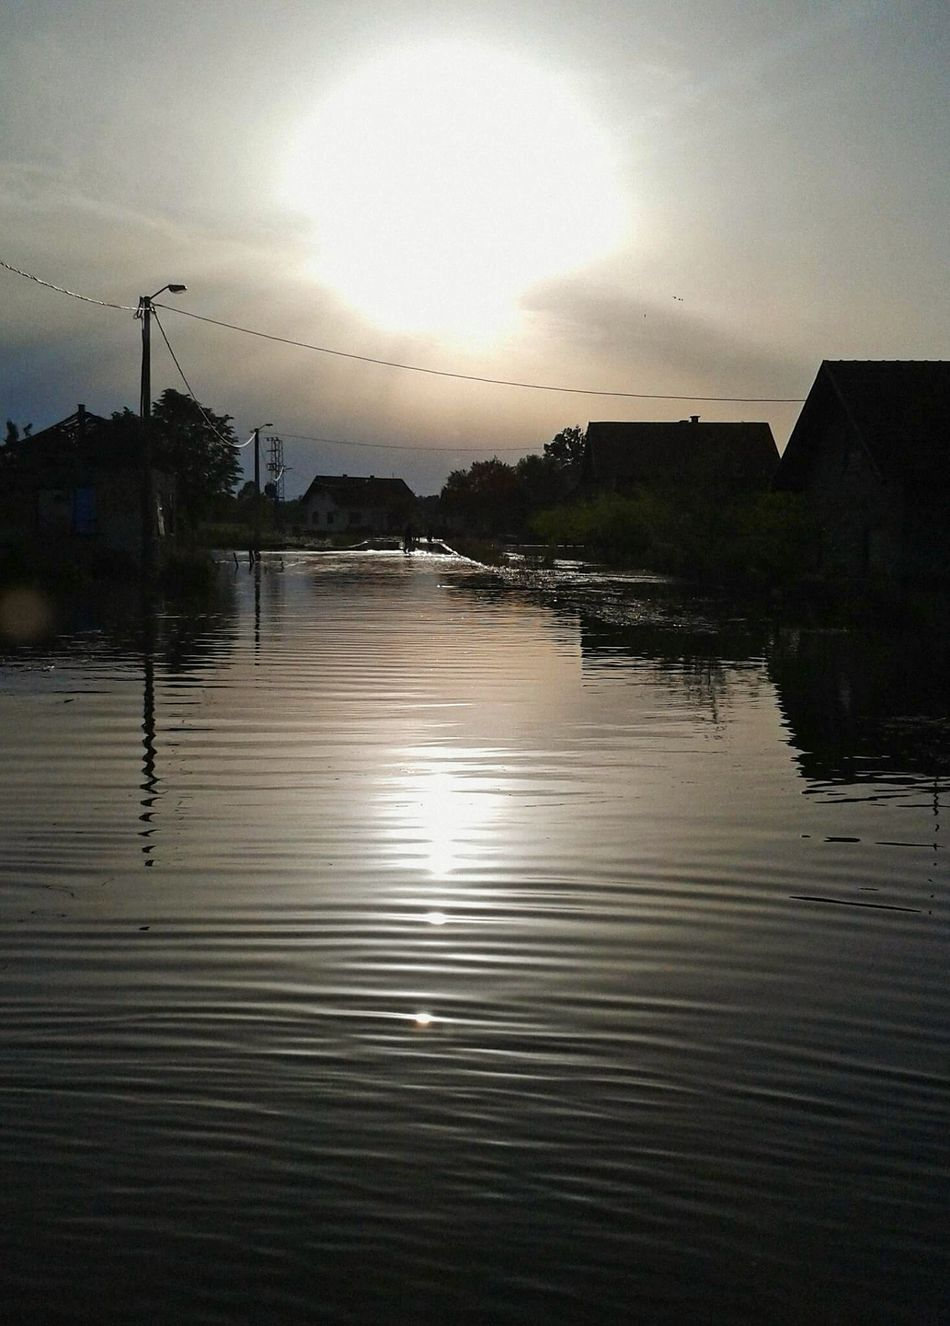 floods in Bosnia 2014 Water Reflection Dramatic Sky Nature Catastrophy Outdoors